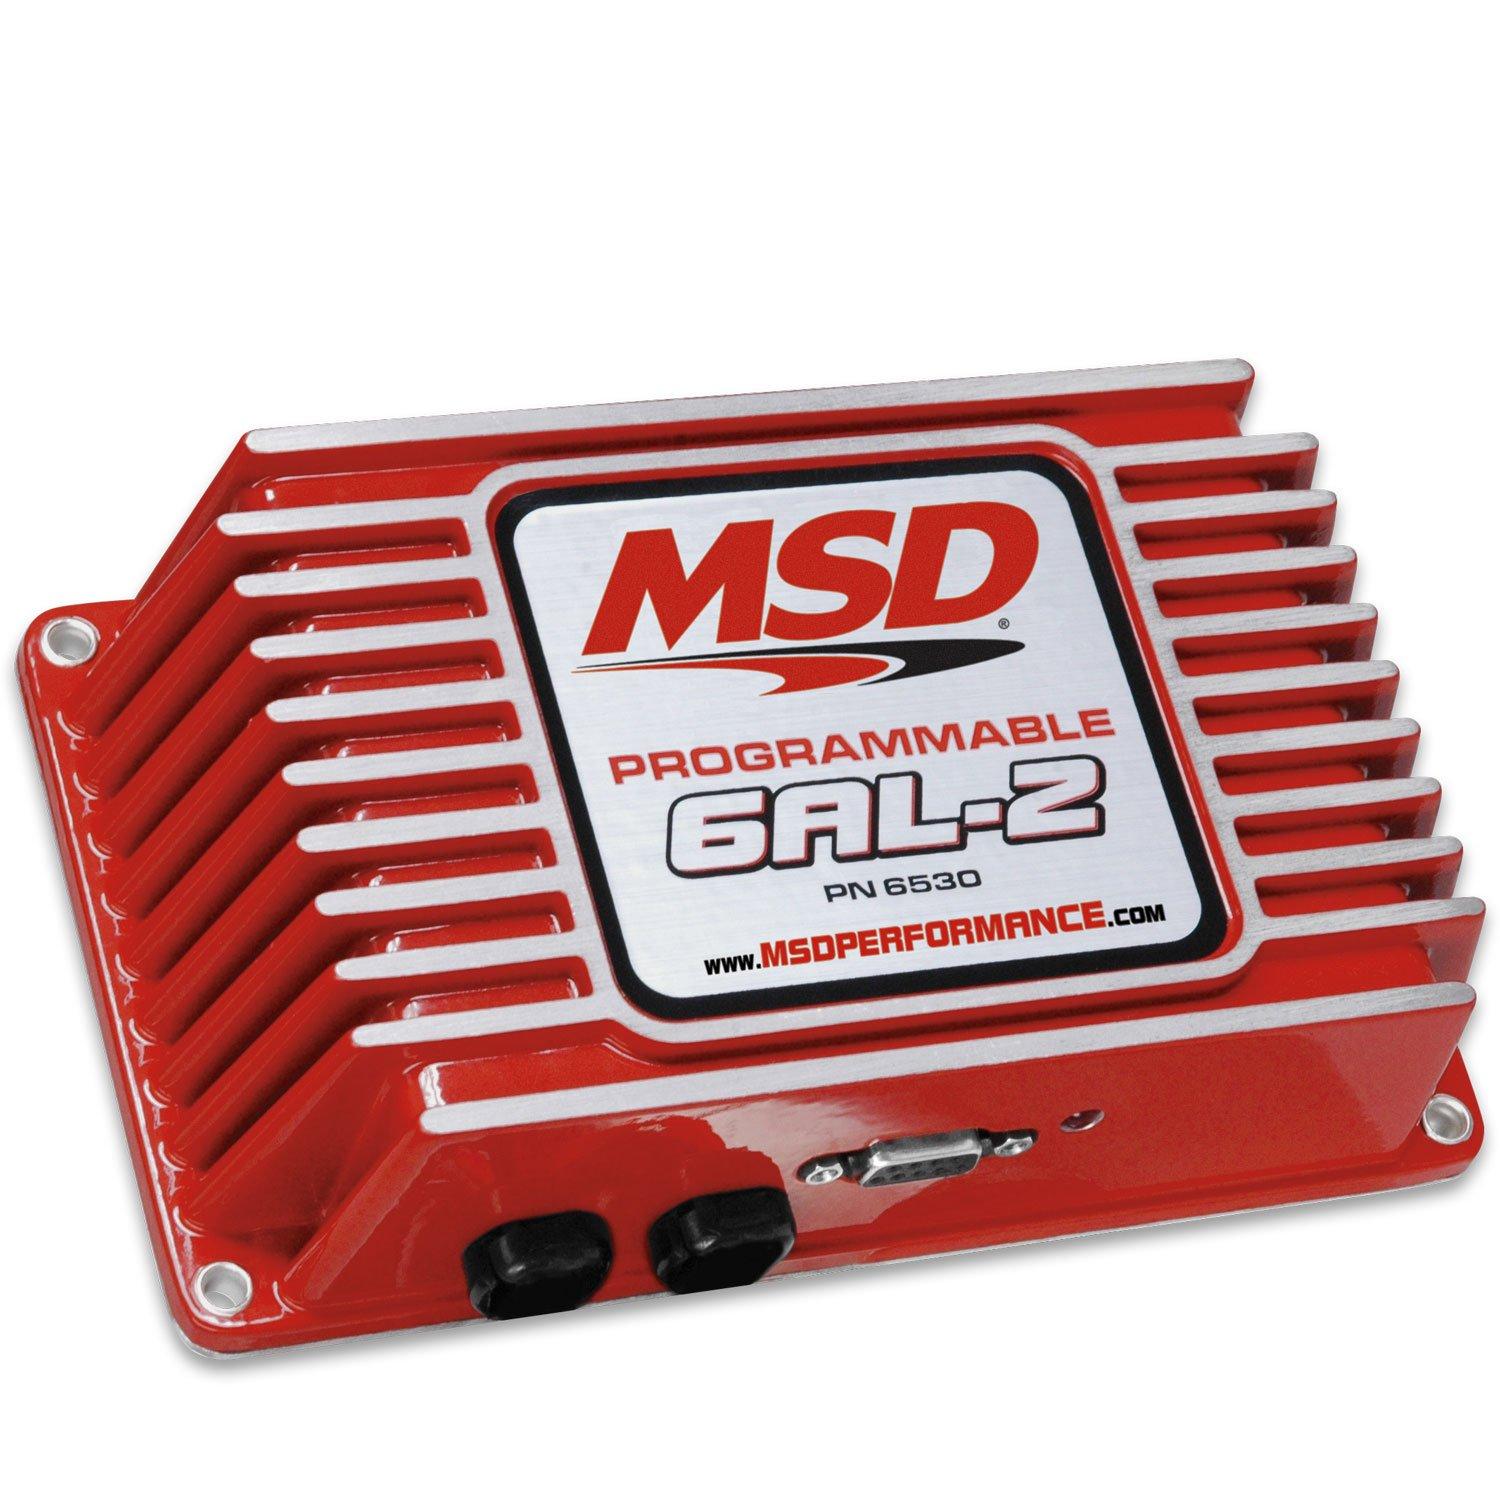 msd 6530 msd digital programmable 6al 2 msd performance products 6530 msd digital programmable 6al 2 image